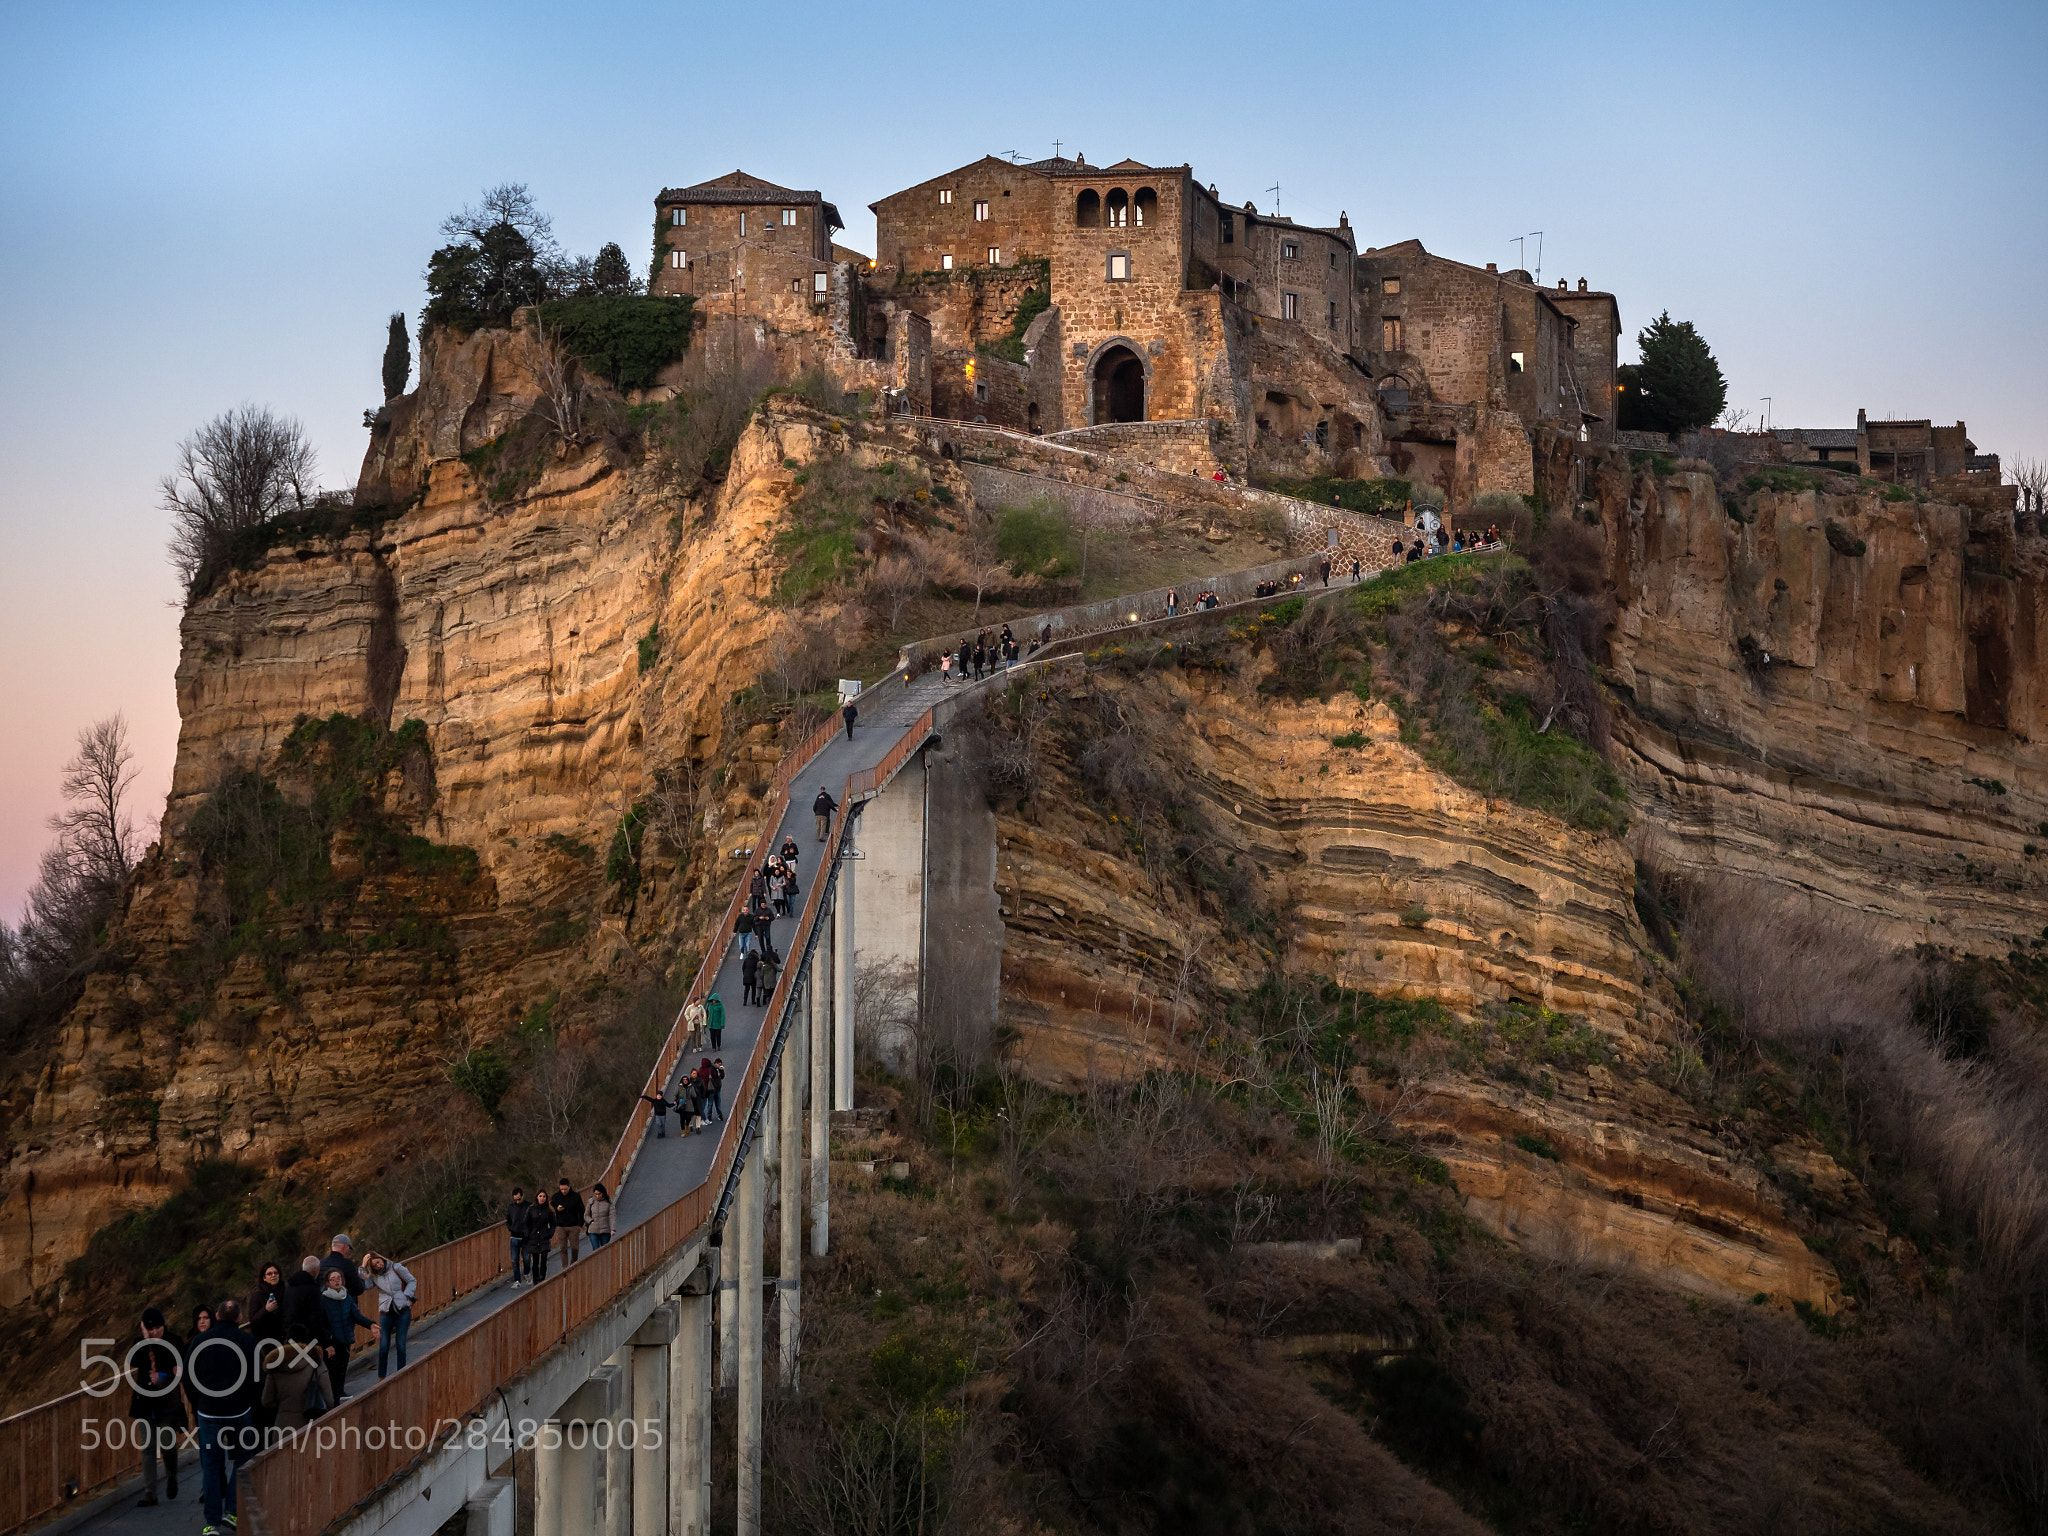 Layers Of Time Civita Di Bagnoregio In Italy As The Sun Gets Low